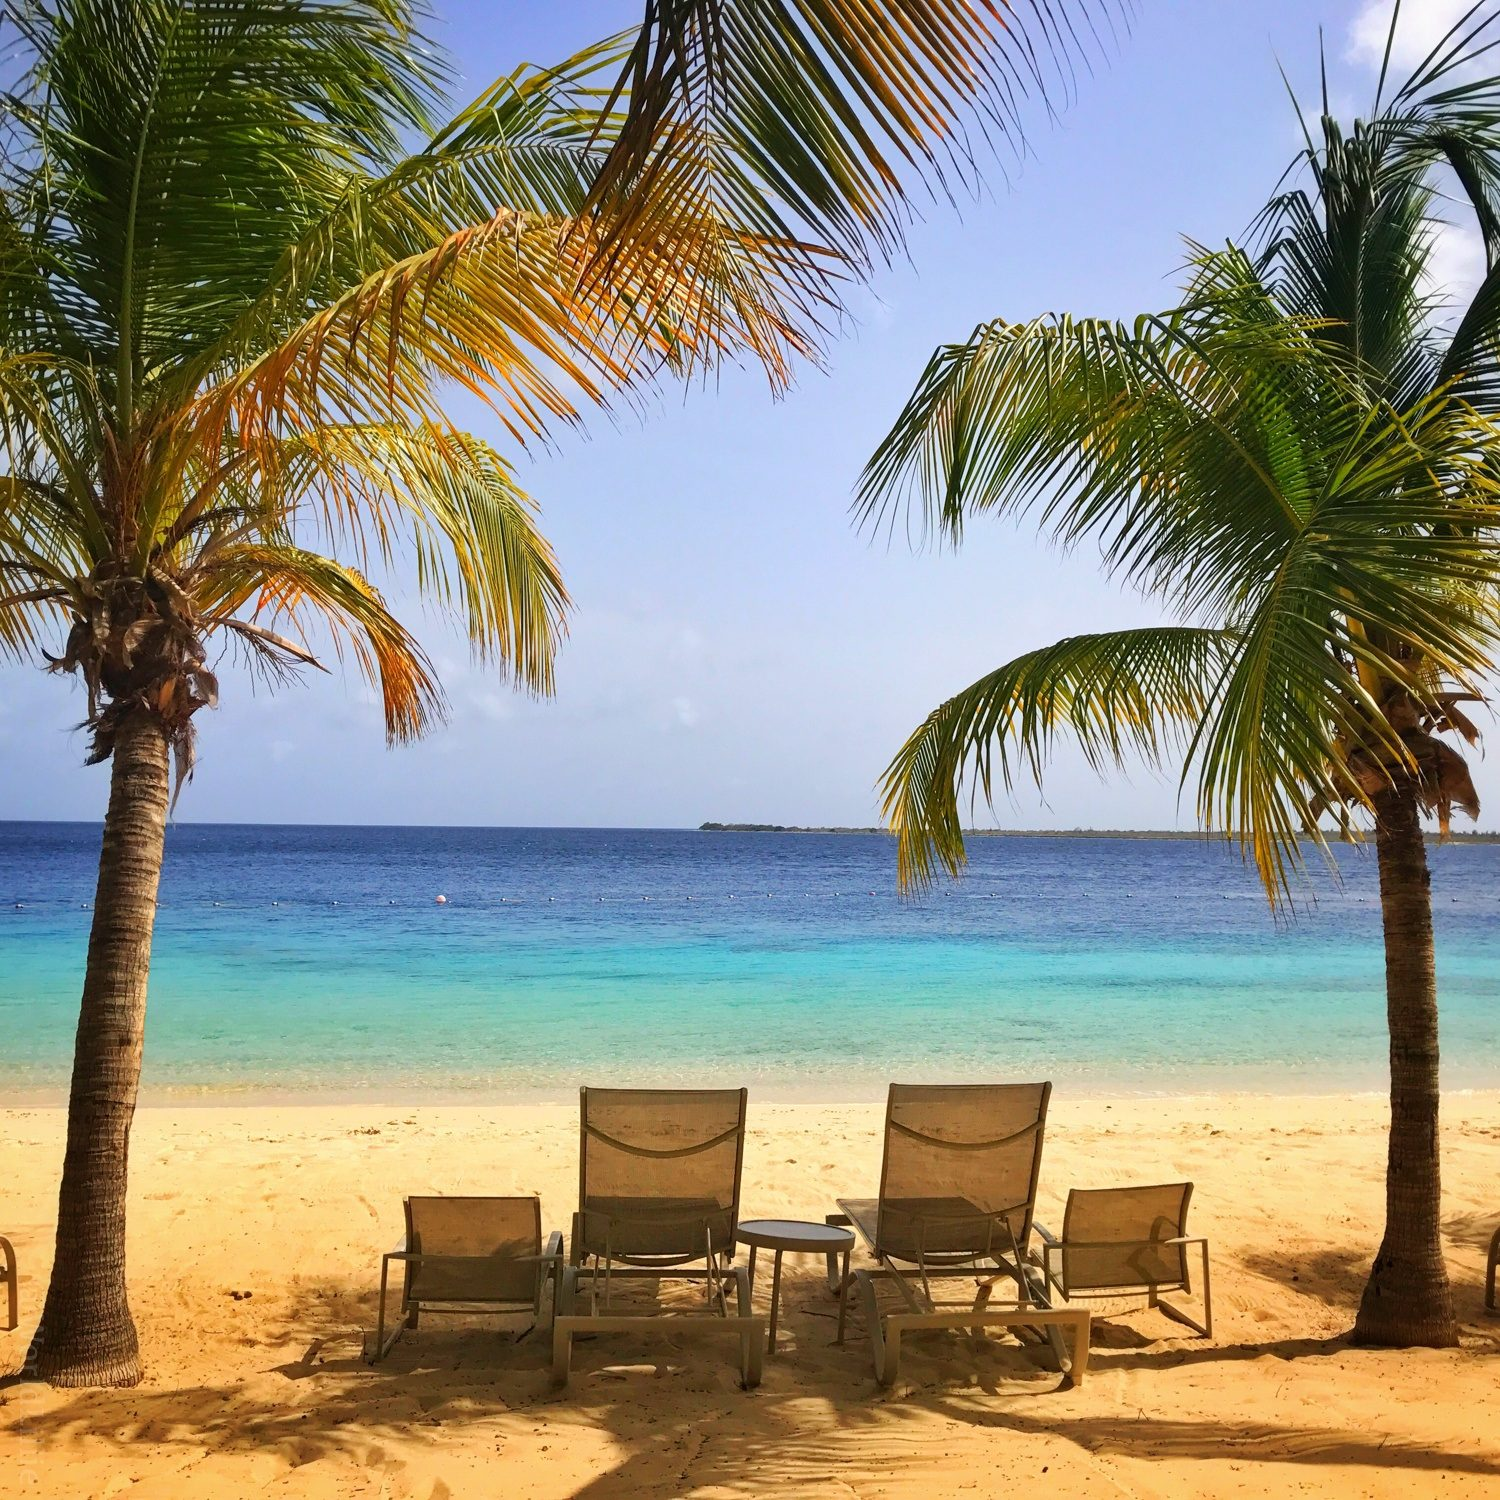 This Bonaire beach is beyond inviting.